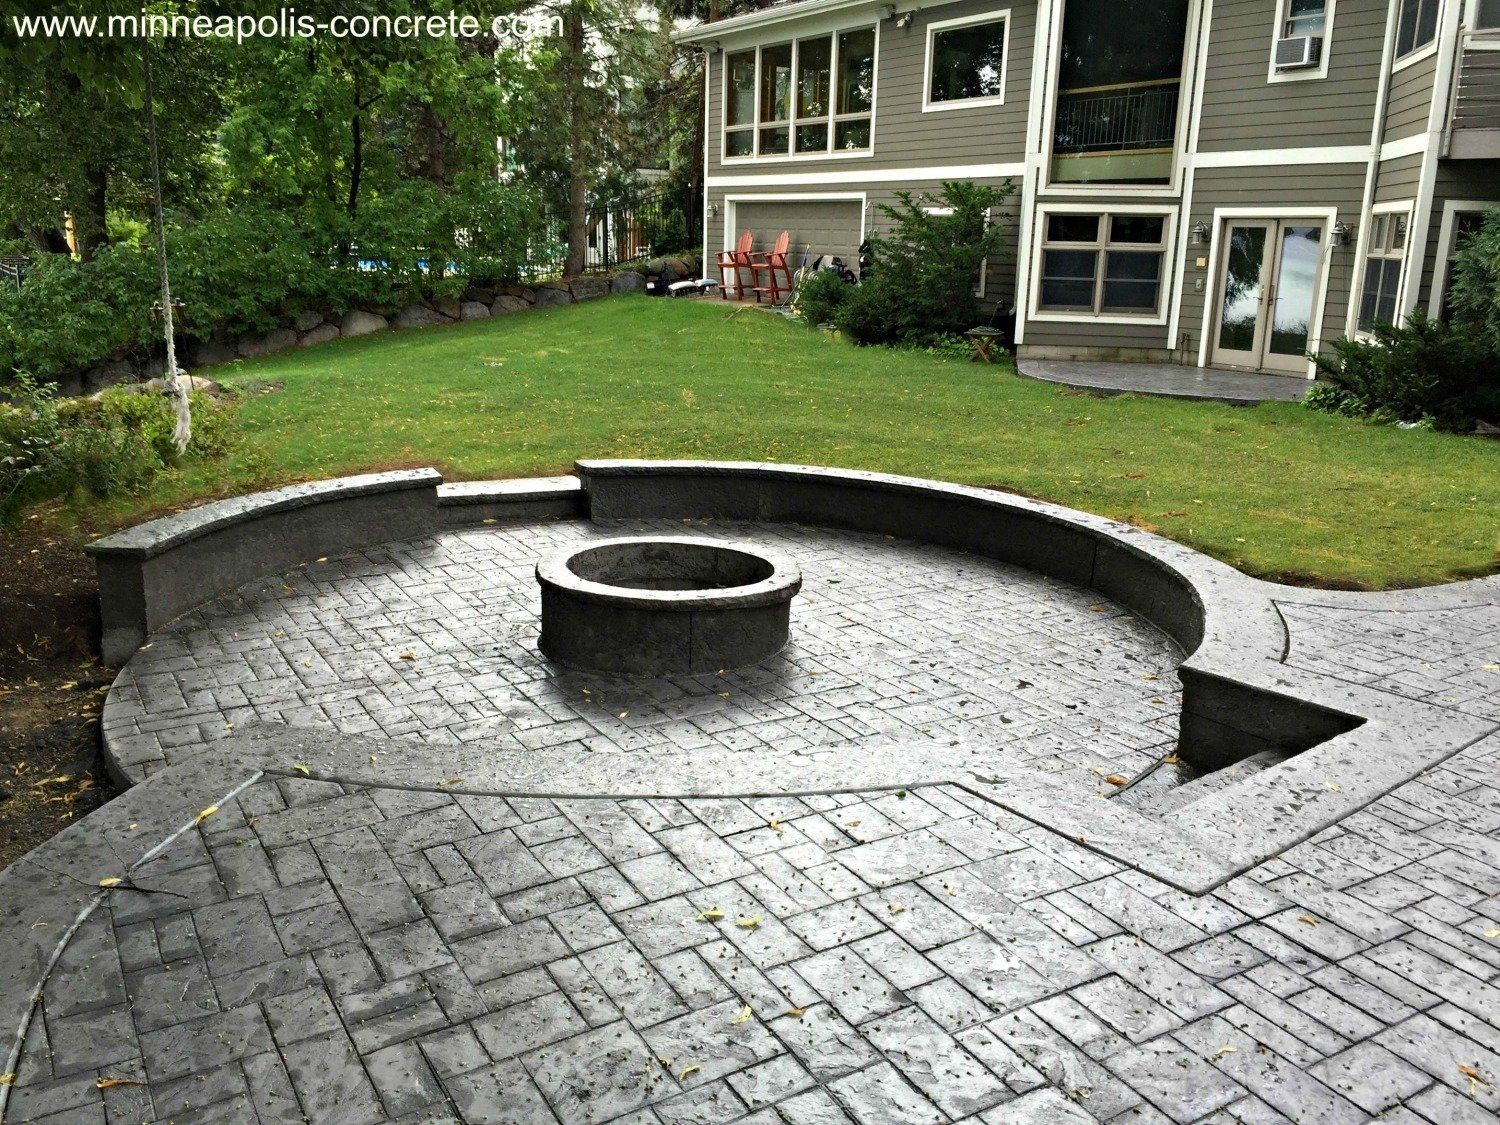 Concrete Color Options With Stamped Concrete Patio How To Install Stamped Concrete  Patio